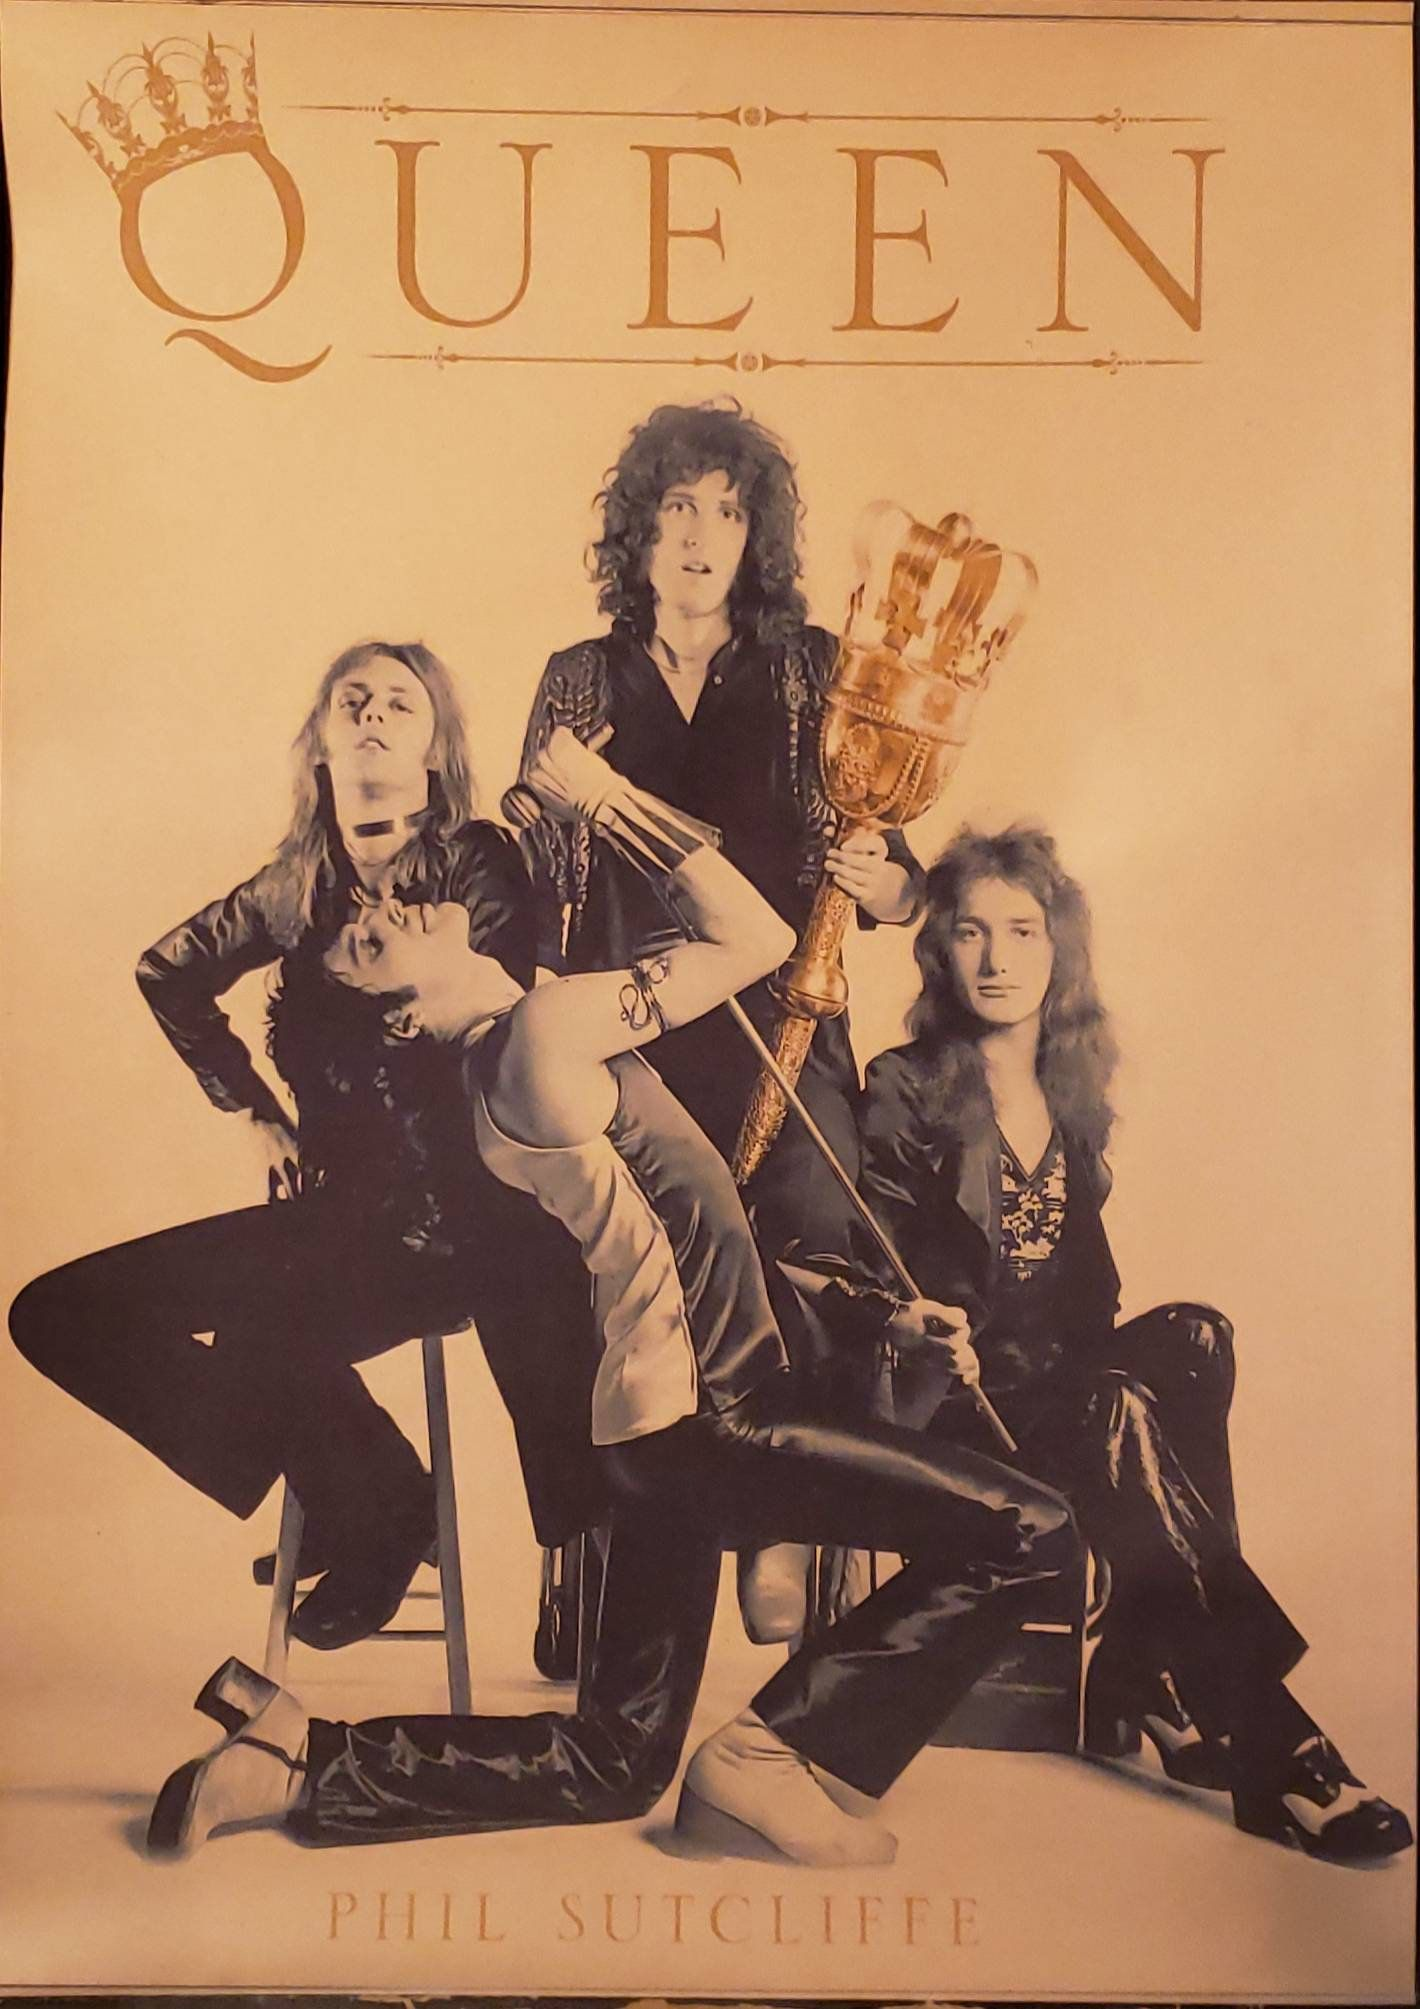 Vintage Queen Poster By Phil Sutcliffe Reproduction Etsy Queen Poster Queen Friend Phil